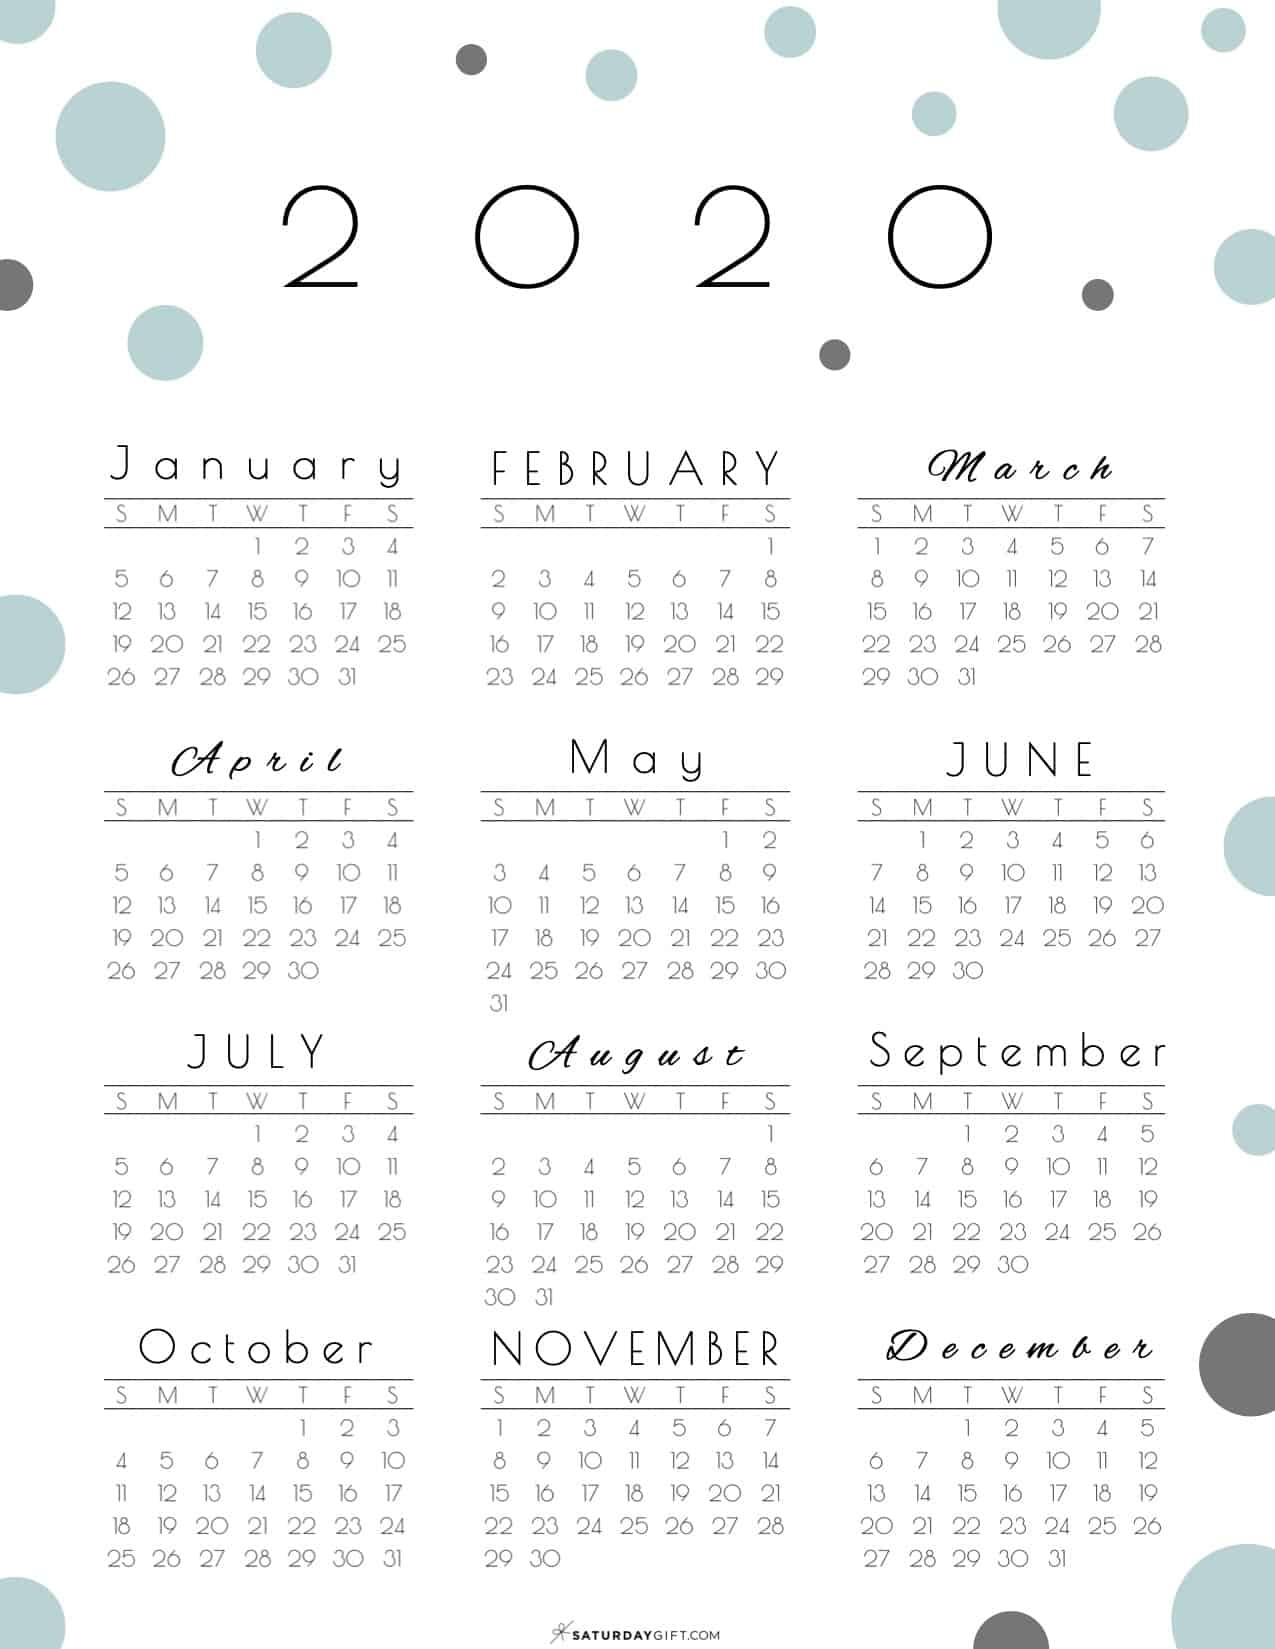 Year At A Glance Calendar 2020 - Pretty (And Free!) Printable throughout 2020 Calender At A Glance Free